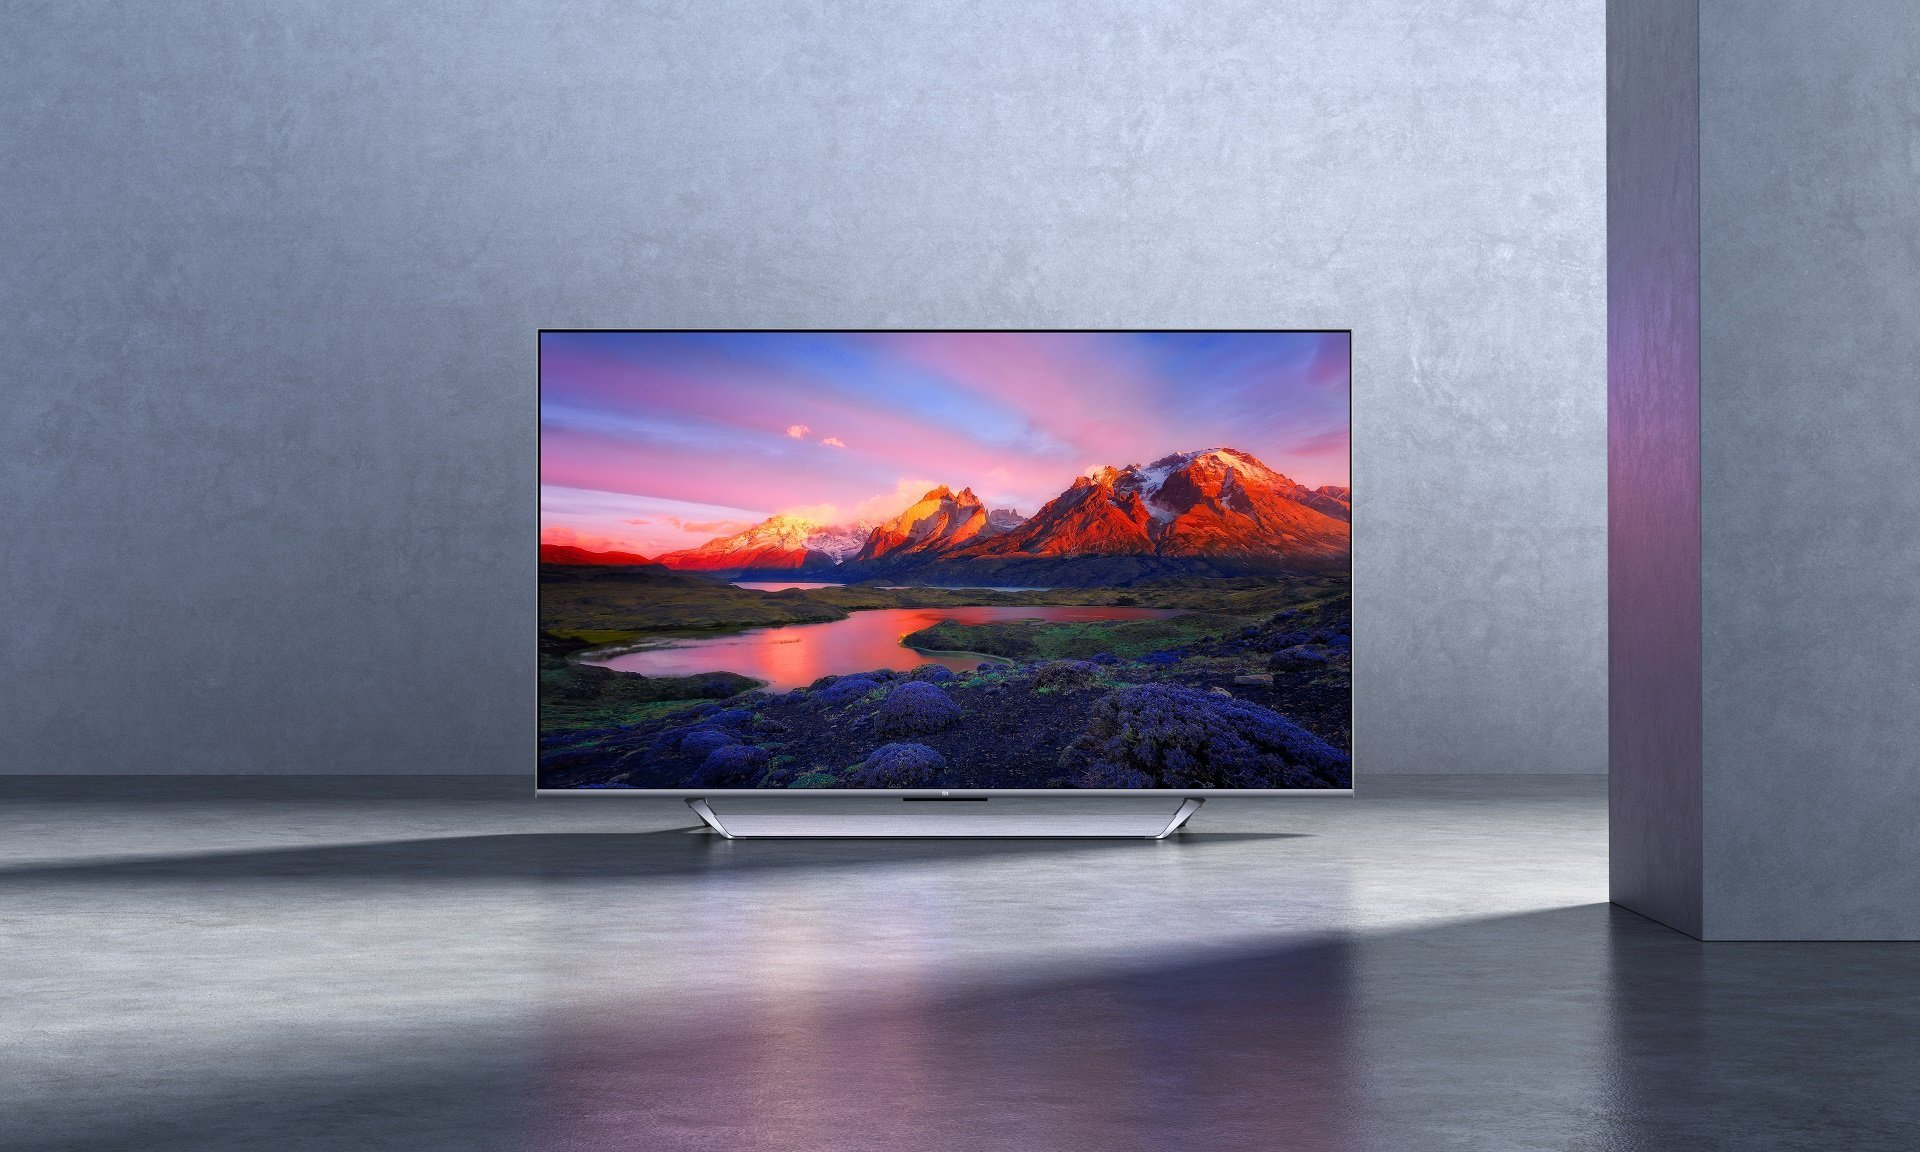 Xiaomi Mi TV Q1 75″ : attention, l'interface HDMI 2.1 n'est pas compatible 4K@120 Hz